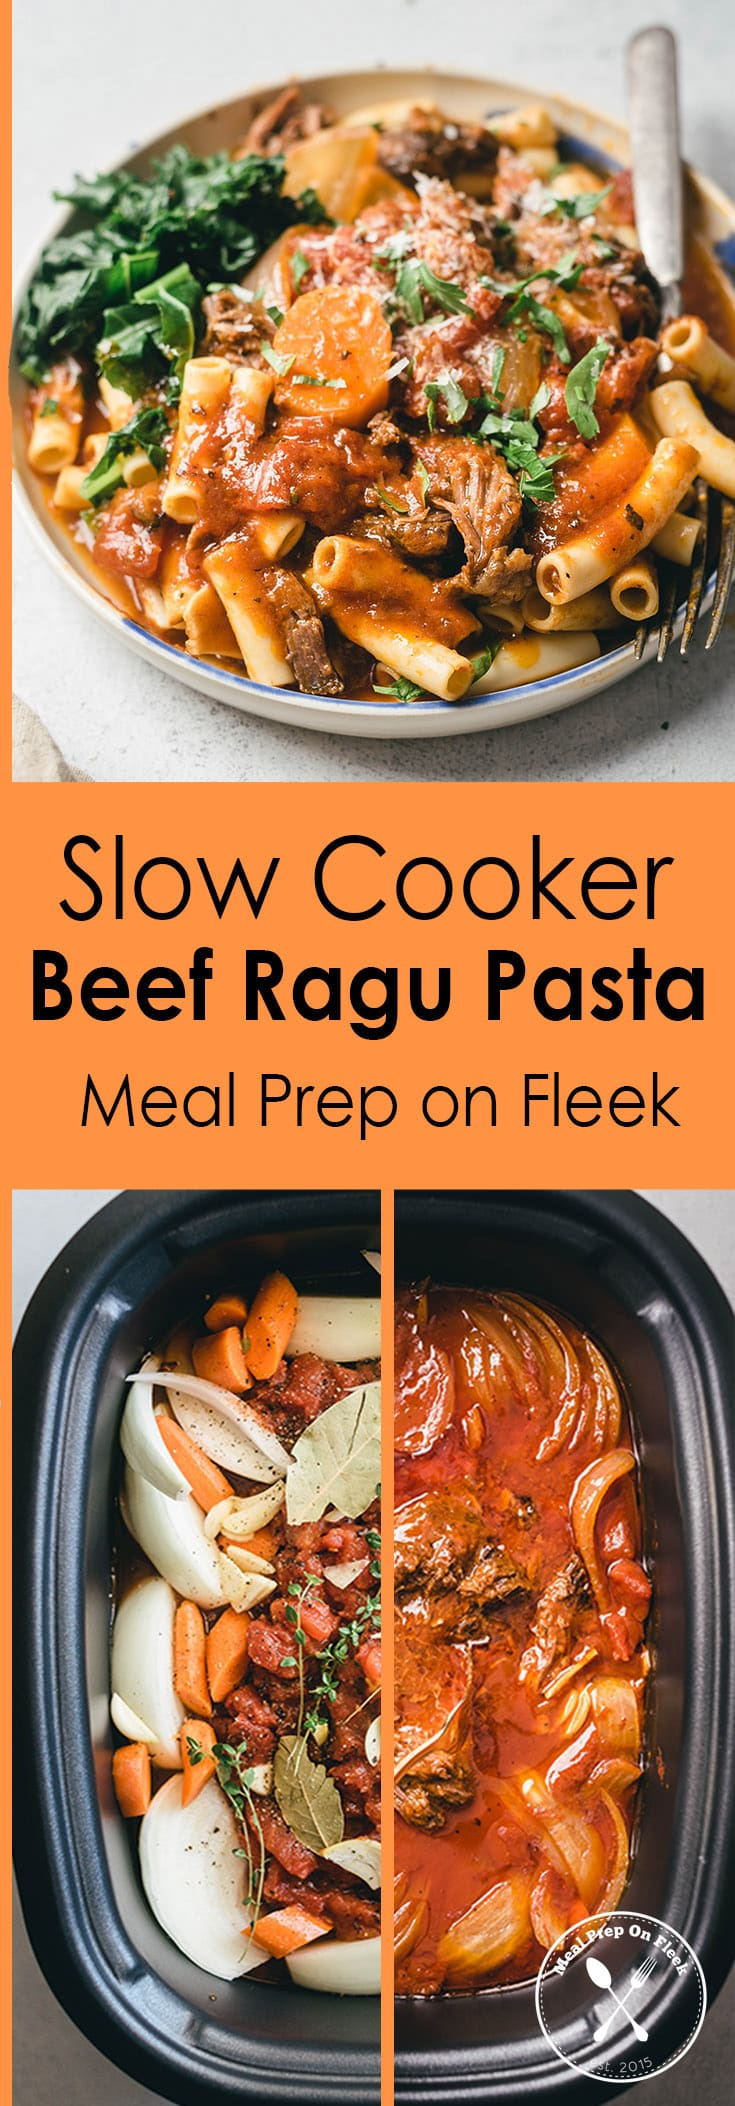 Slow Cooker Beef Ragu Pasta Meal Prep Recipe